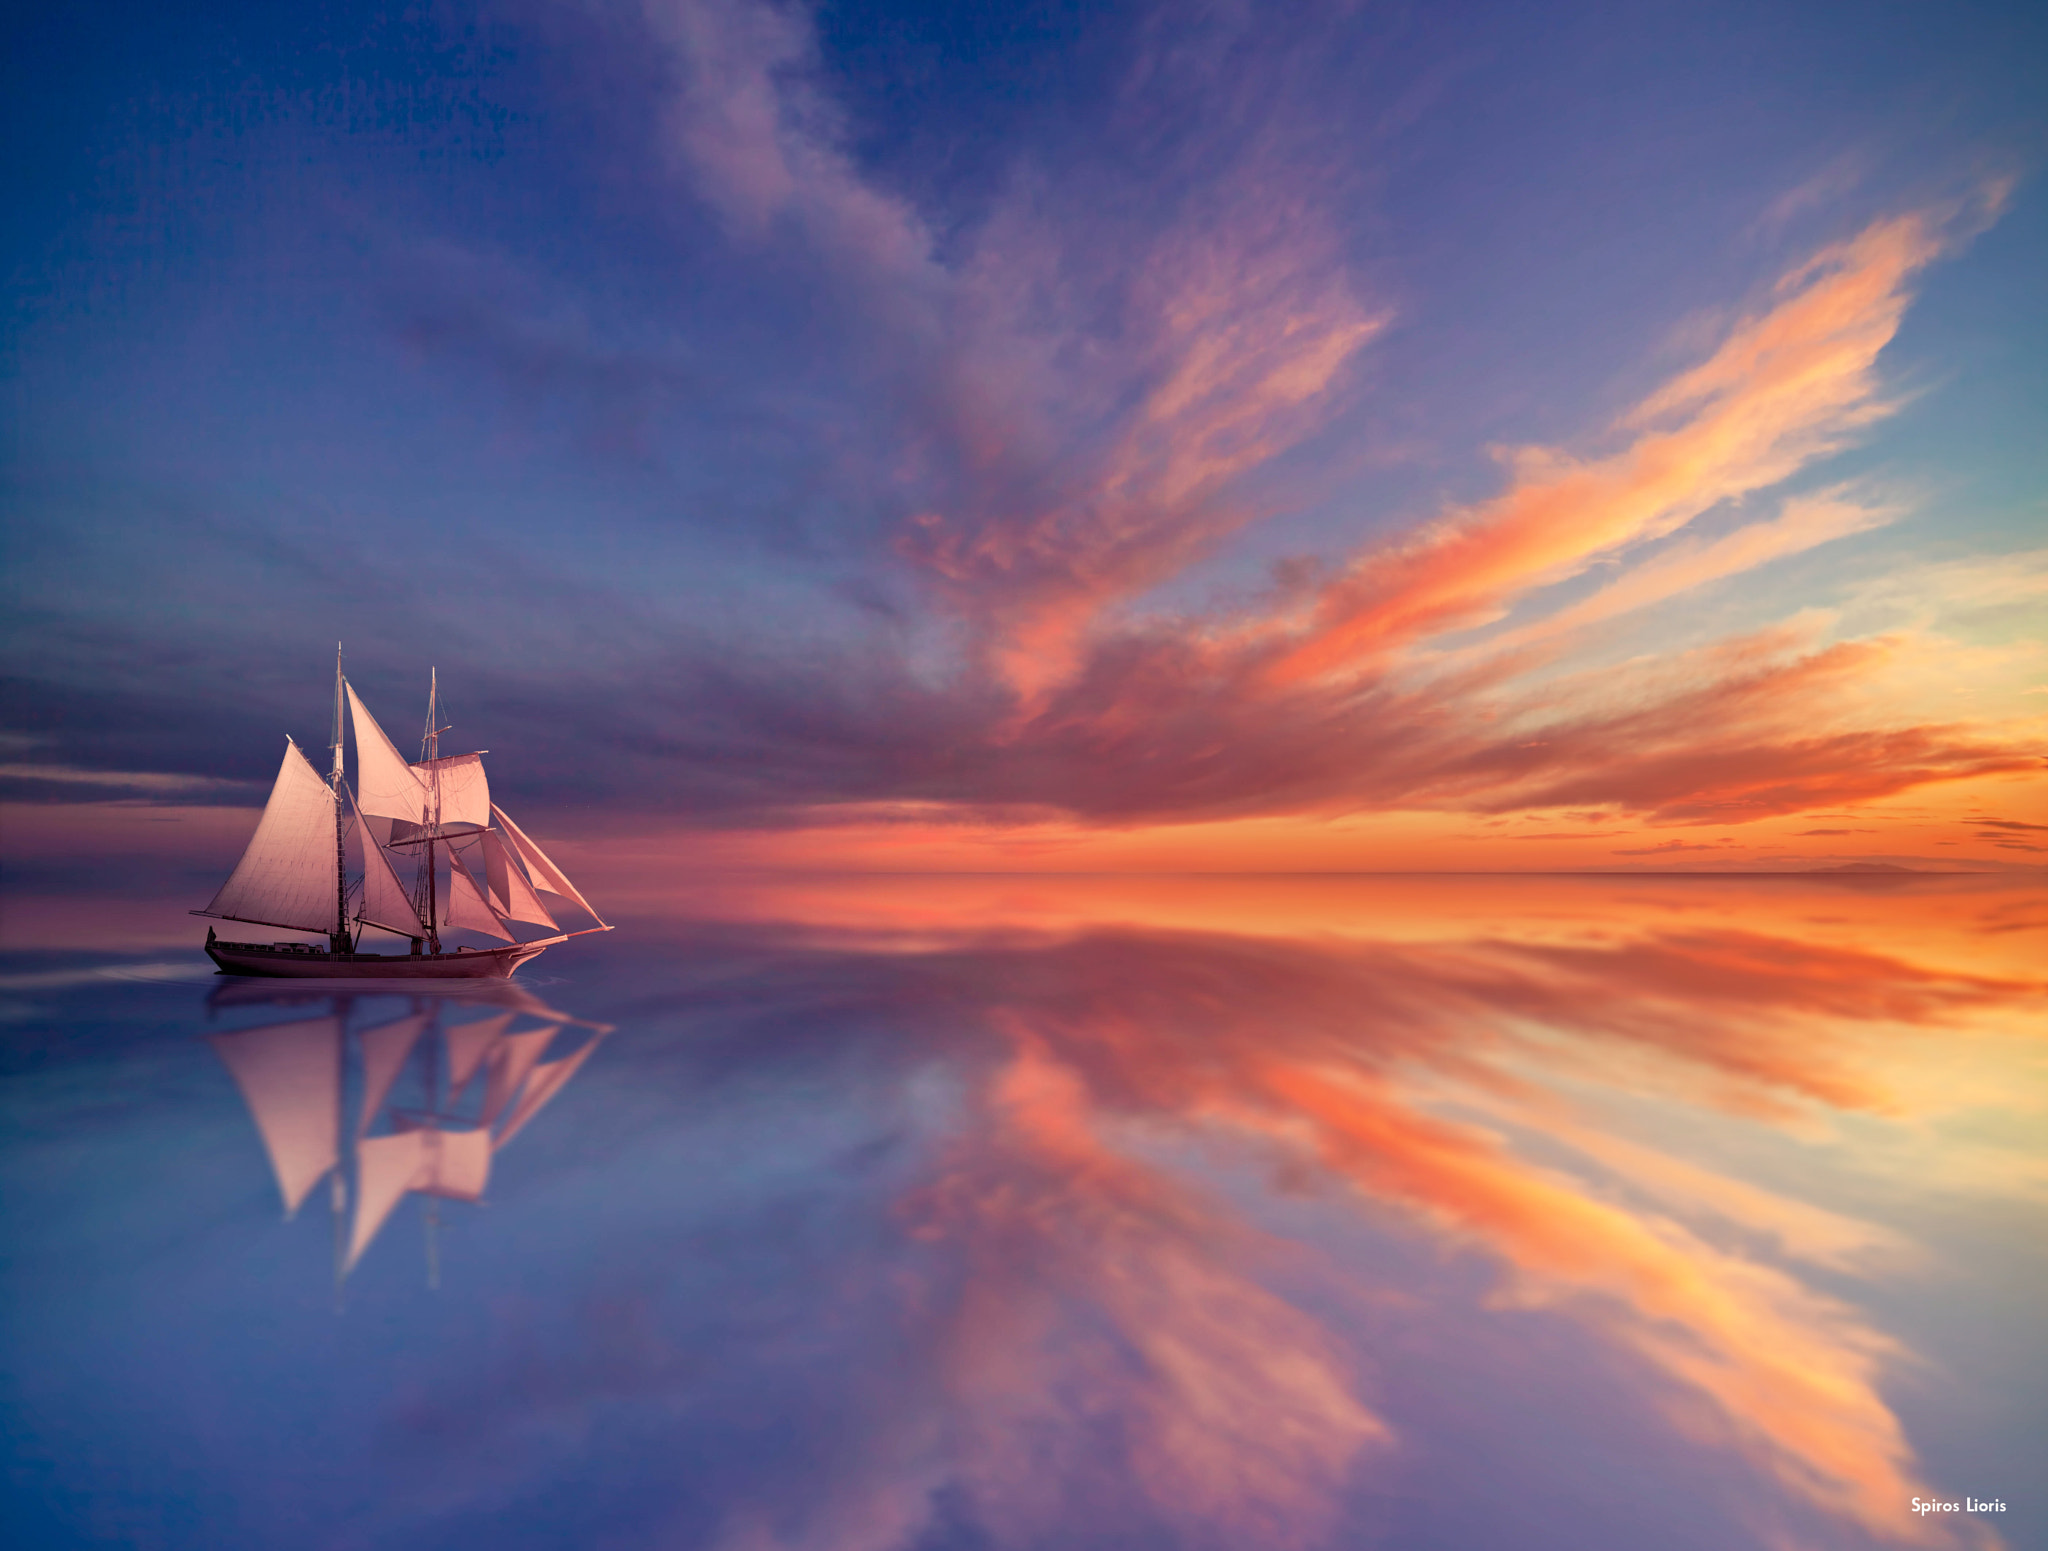 Photograph Sailing the dream by Spiros Lioris on 500px